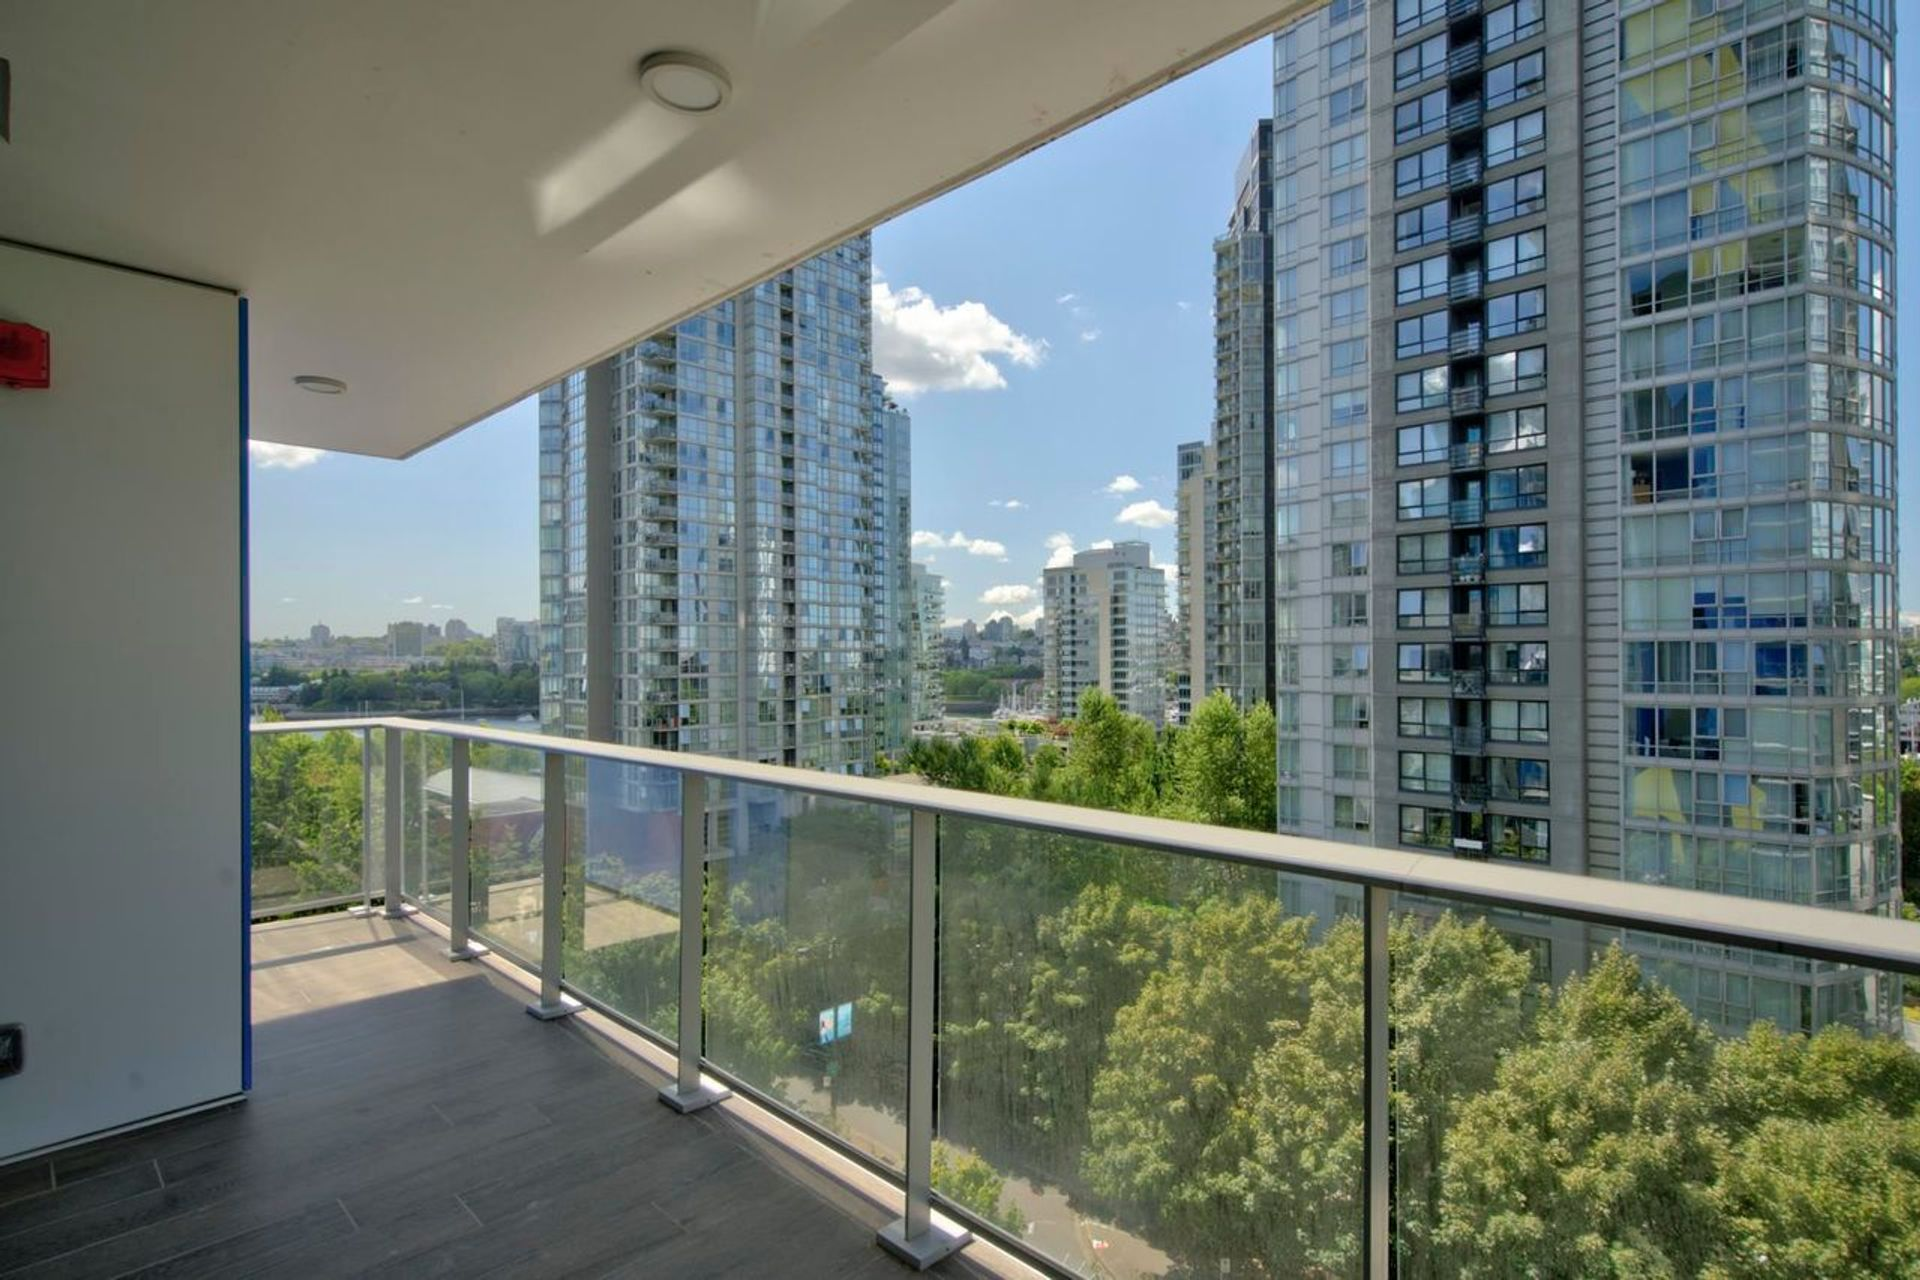 499-pacific-street-yaletown-vancouver-west-17 at 801 - 499 Pacific Street, Yaletown, Vancouver West